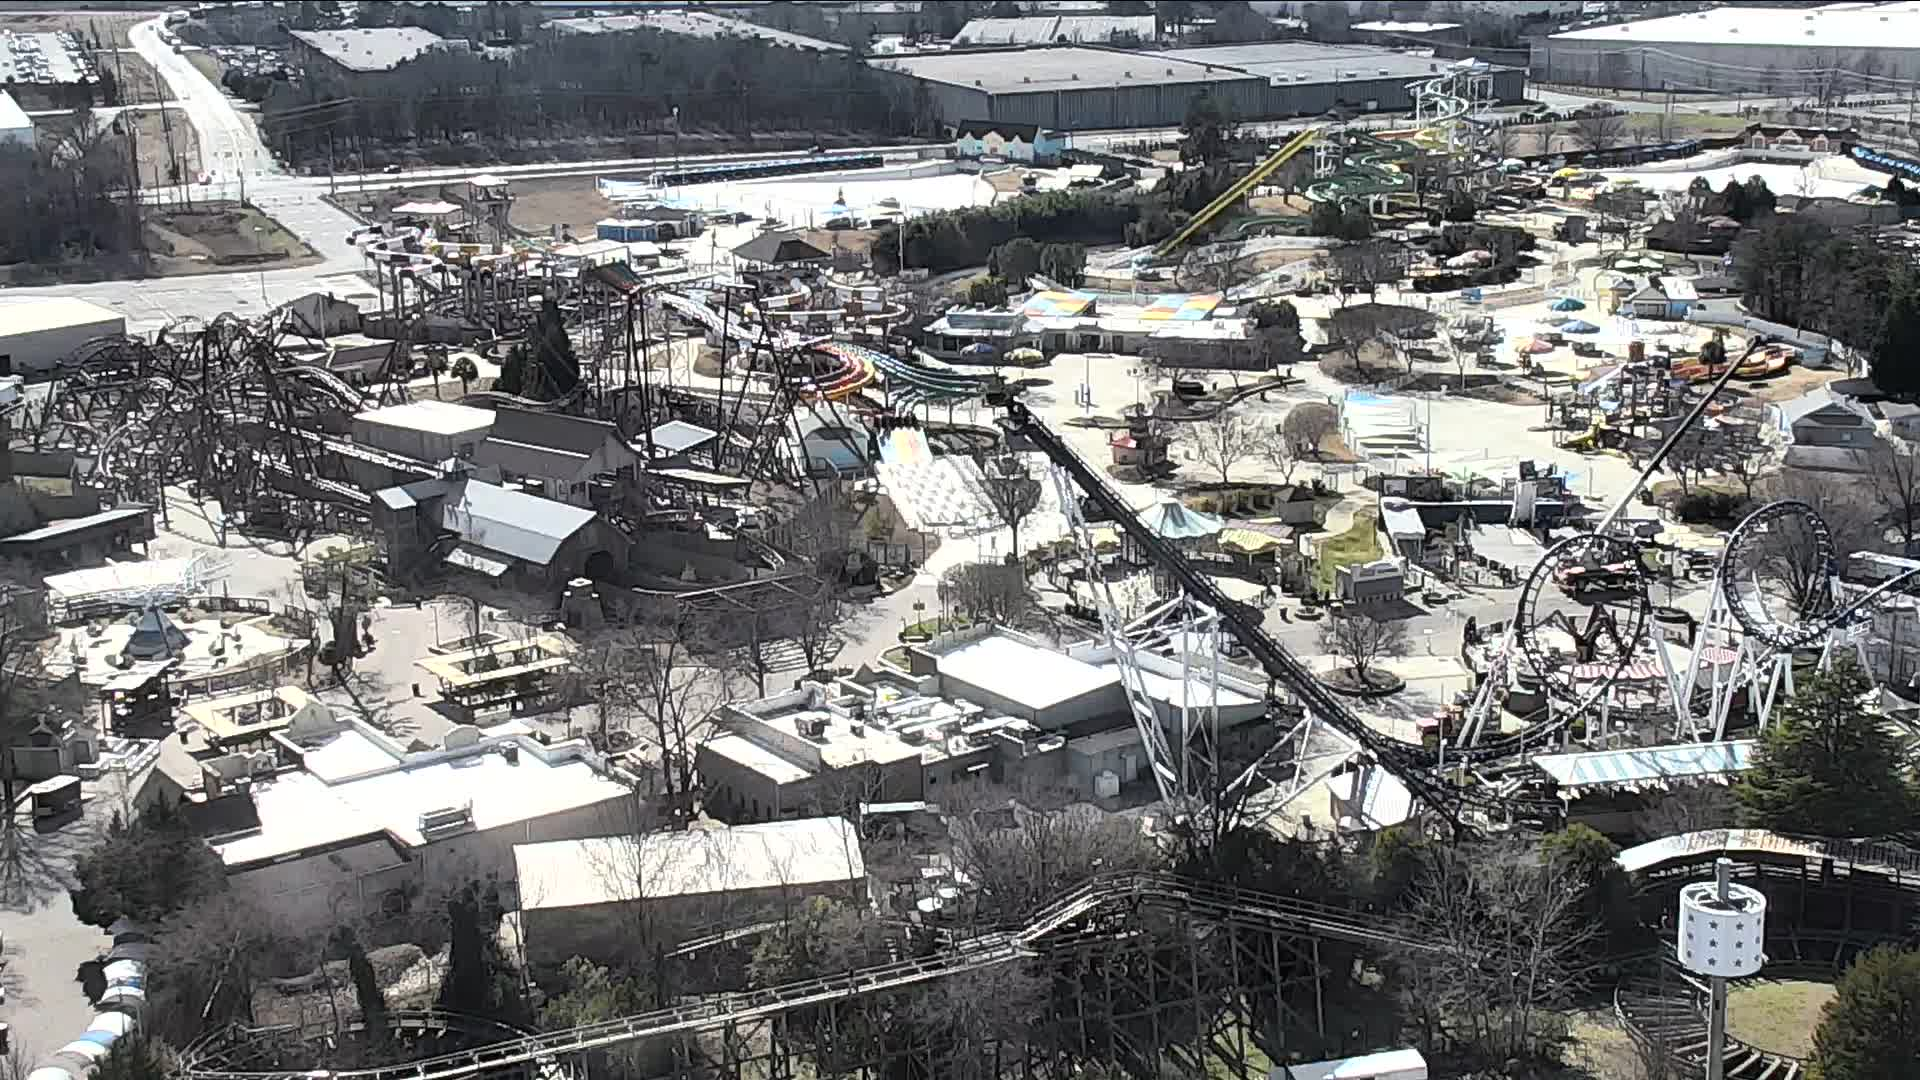 rollercoaster, live, stream, amusement, park, rides, people, north carolina